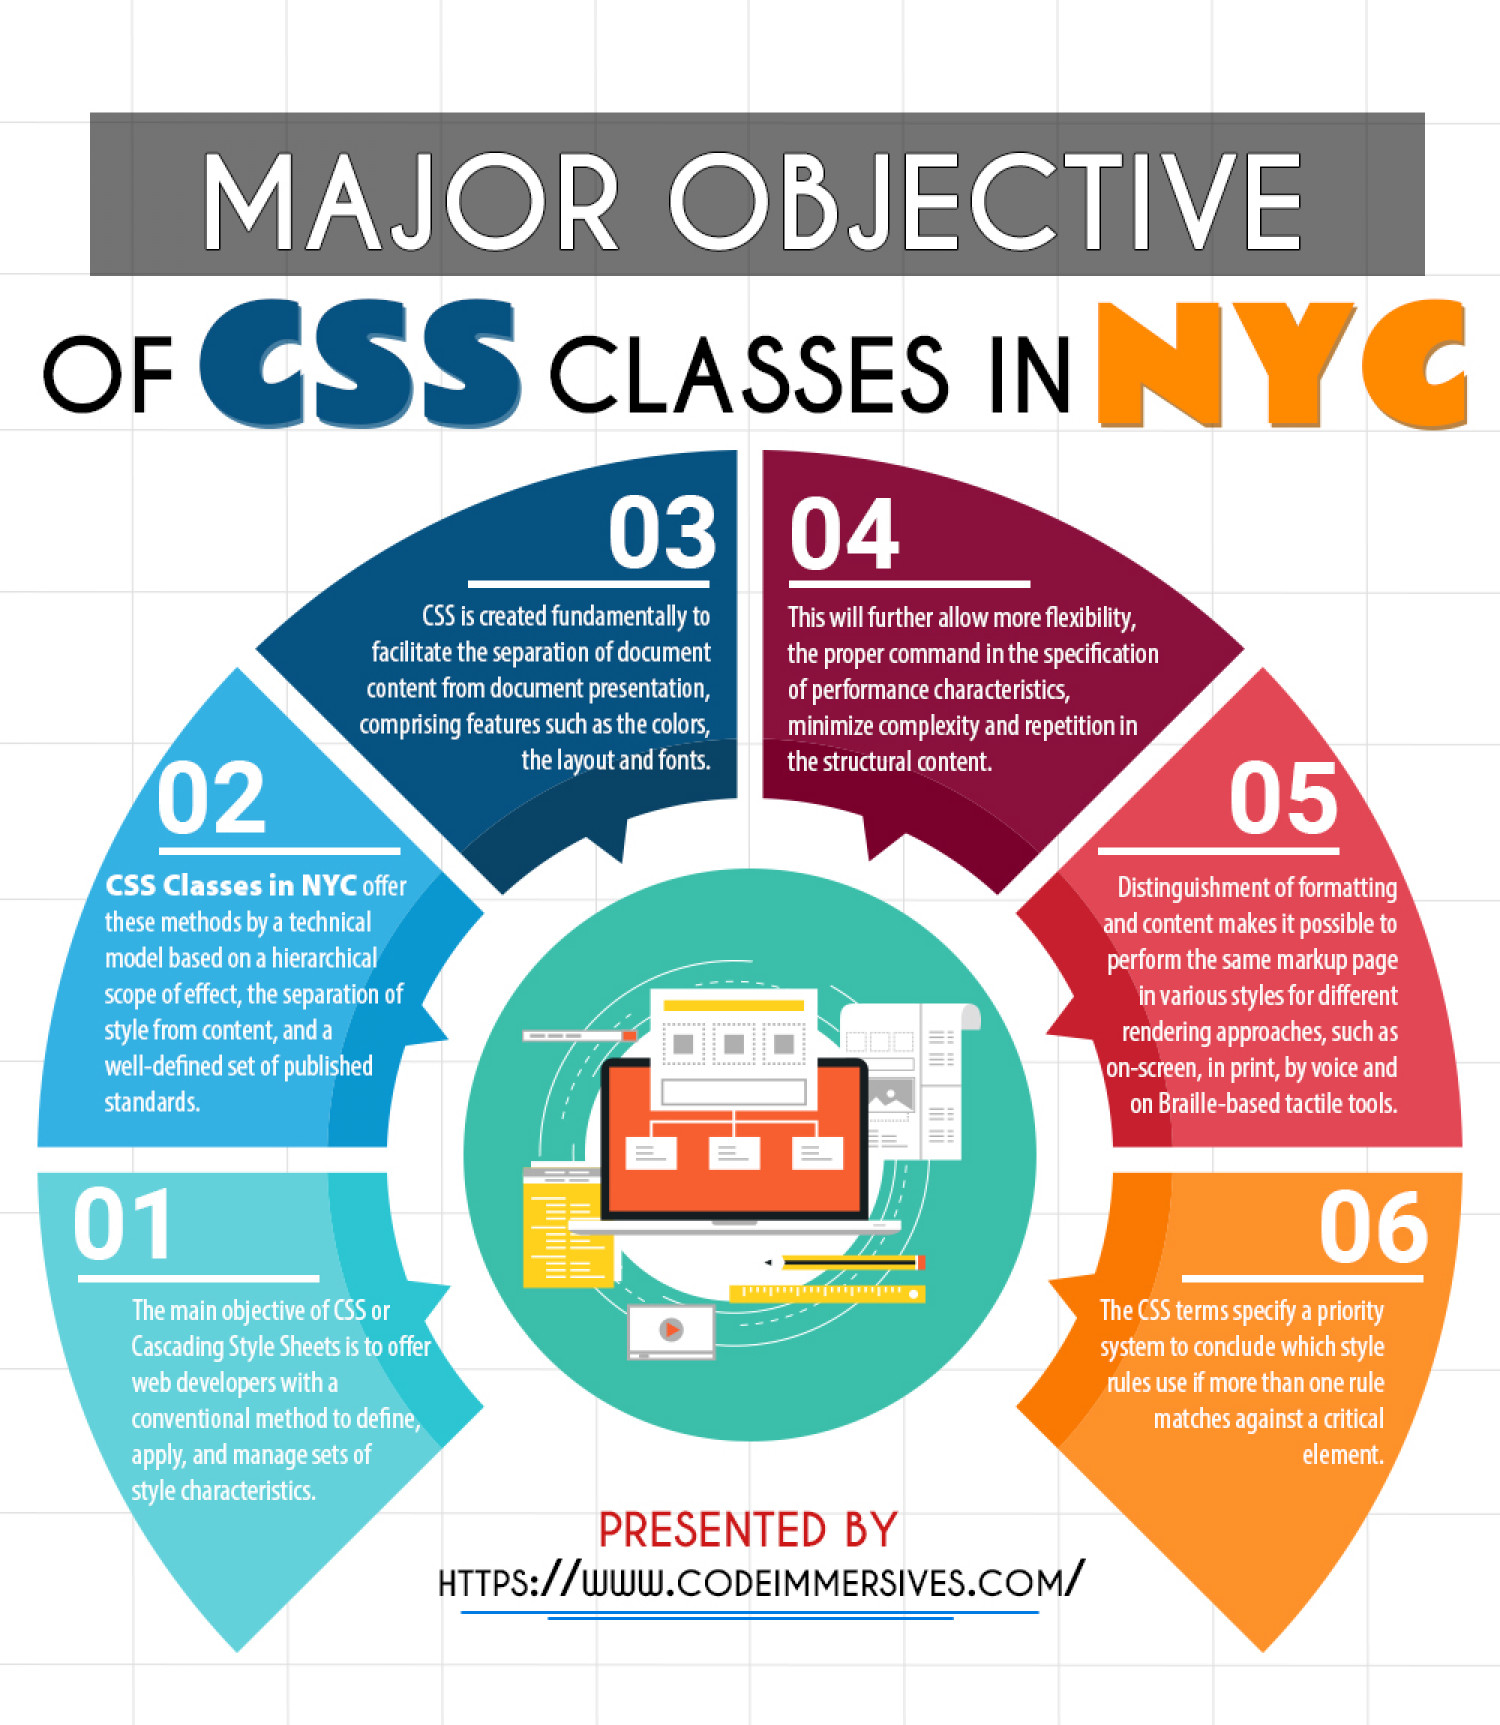 Major Objective of CSS Classes in NYC Infographic